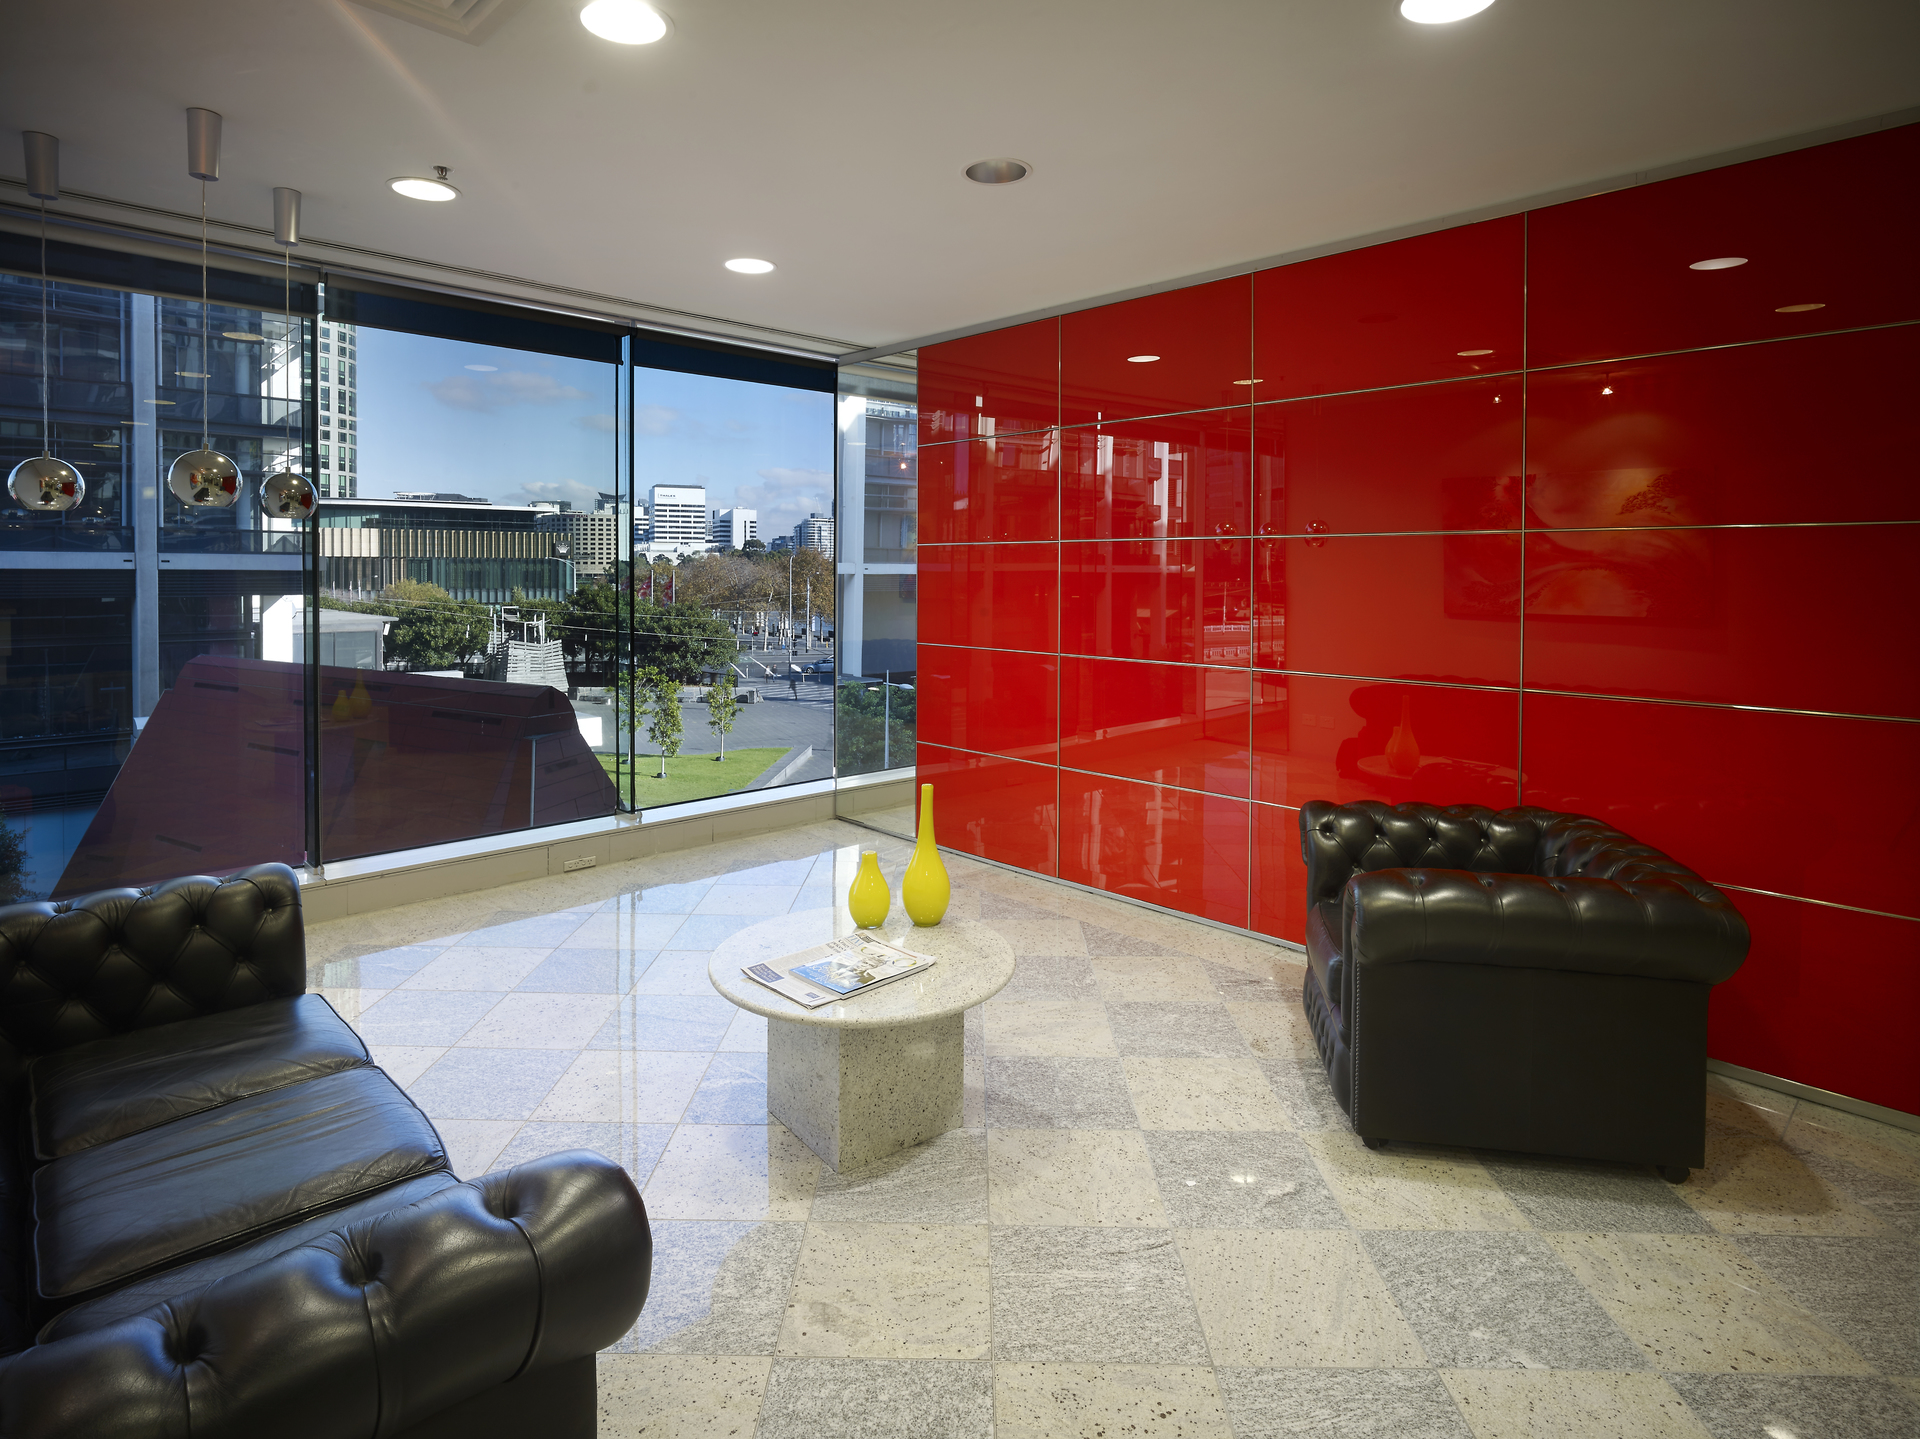 QUALITY OFFICES SPACE IN THE HEART OF MELBOURNE ICONIC CULTURAL HUB AT SOUTHBANK